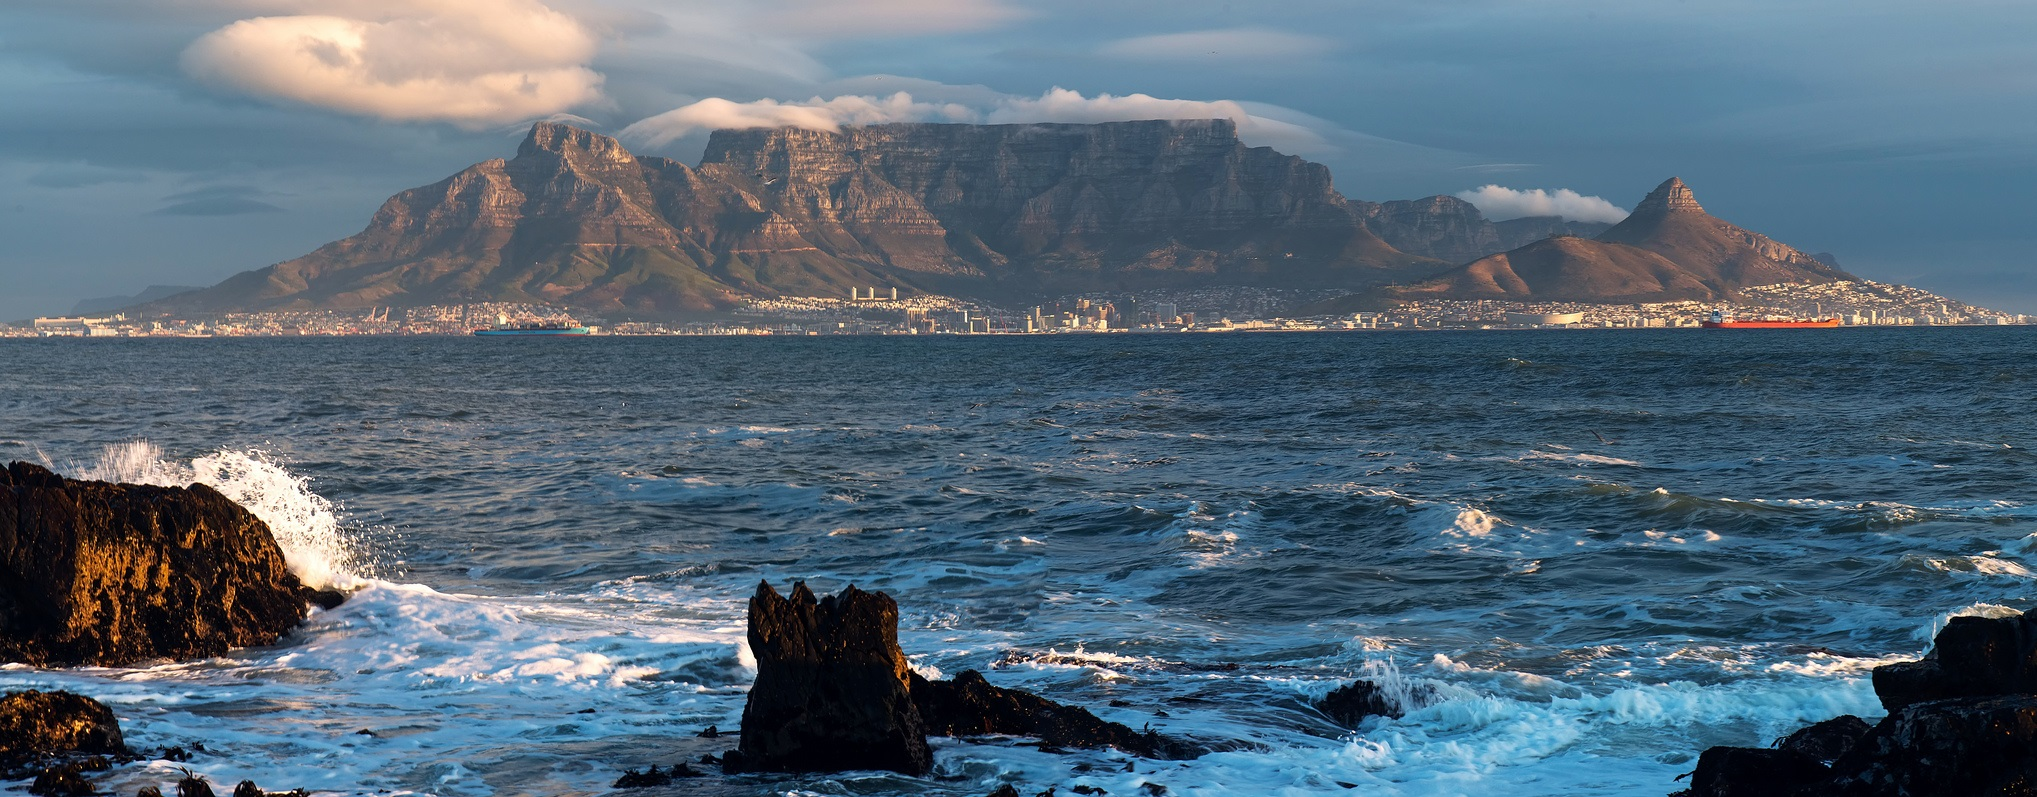 Image for Table Mountain at Cape Town, South Africa